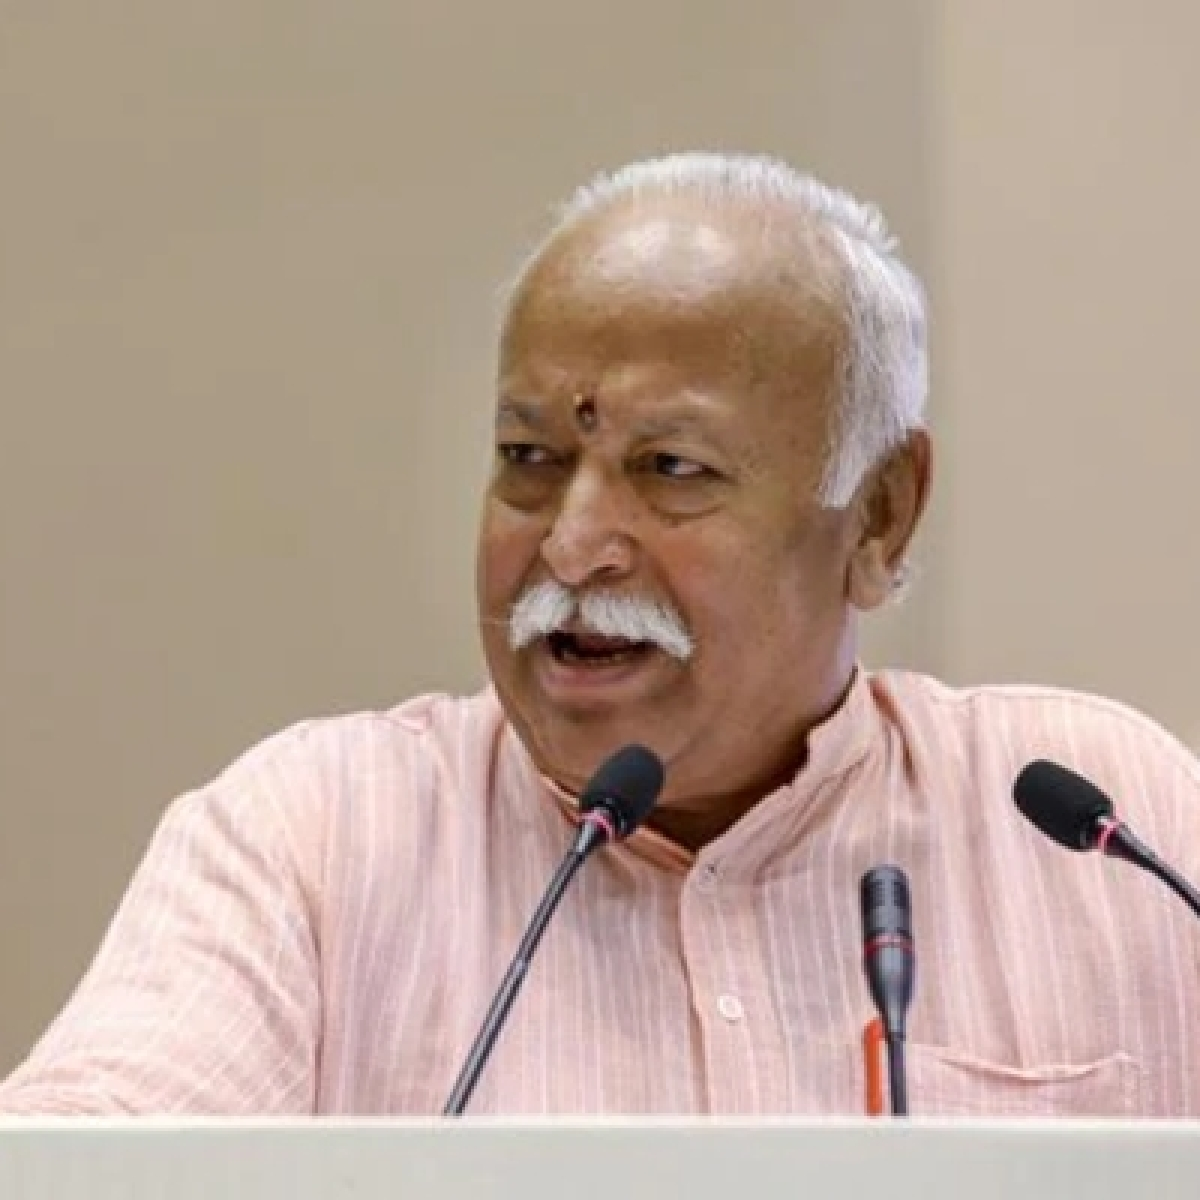 RSS chief Mohan Bhagwat to open centre providing dialysis at Rs 500